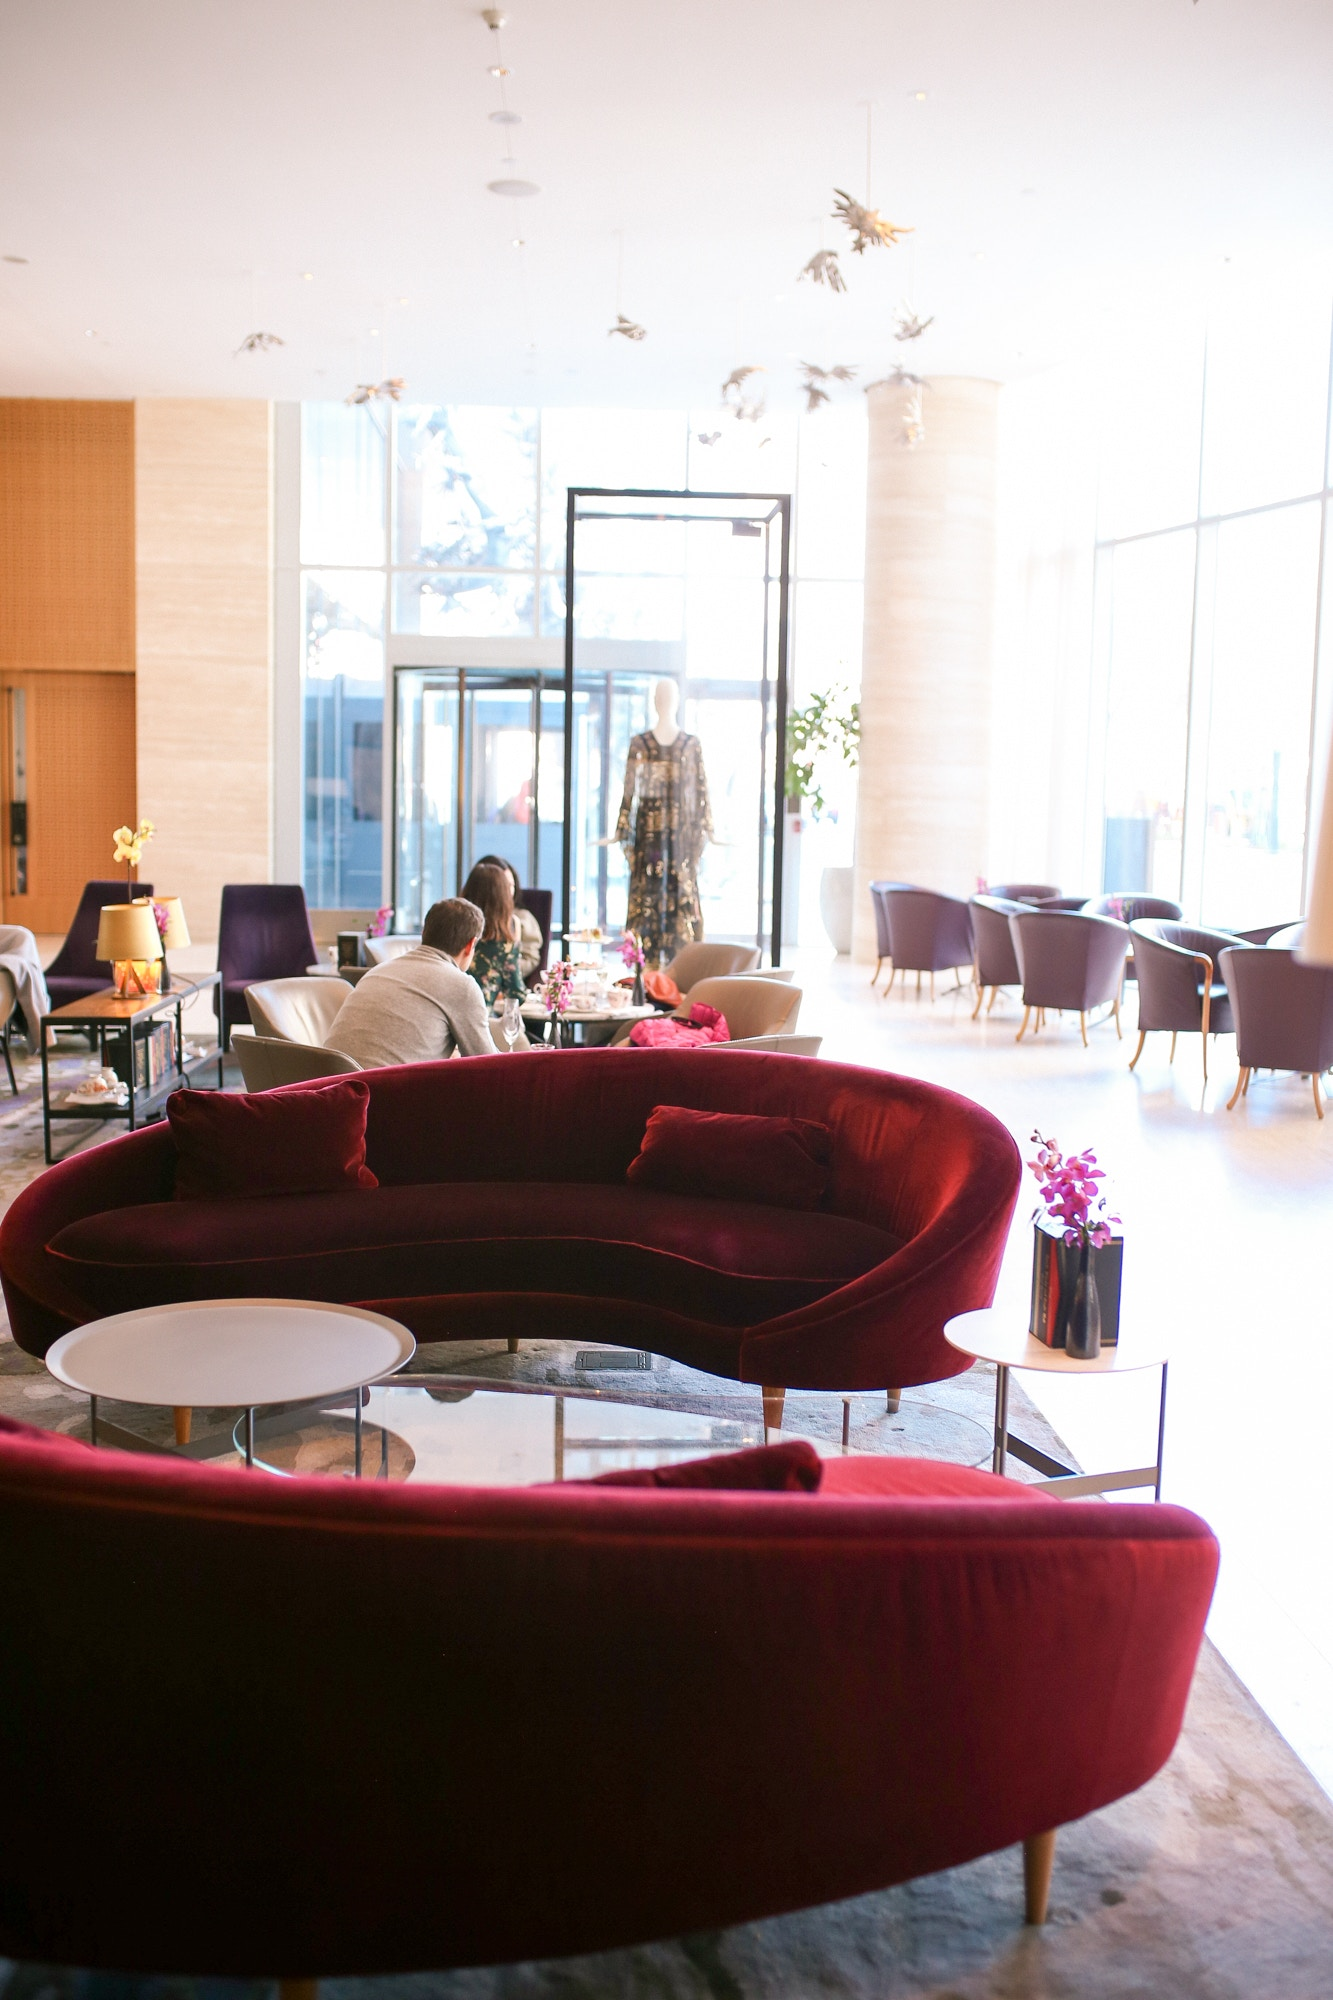 The Shangri-La Hotel Toronto's chic lobby bar is perfect for an Afternoon High Tea or a round of cocktails.